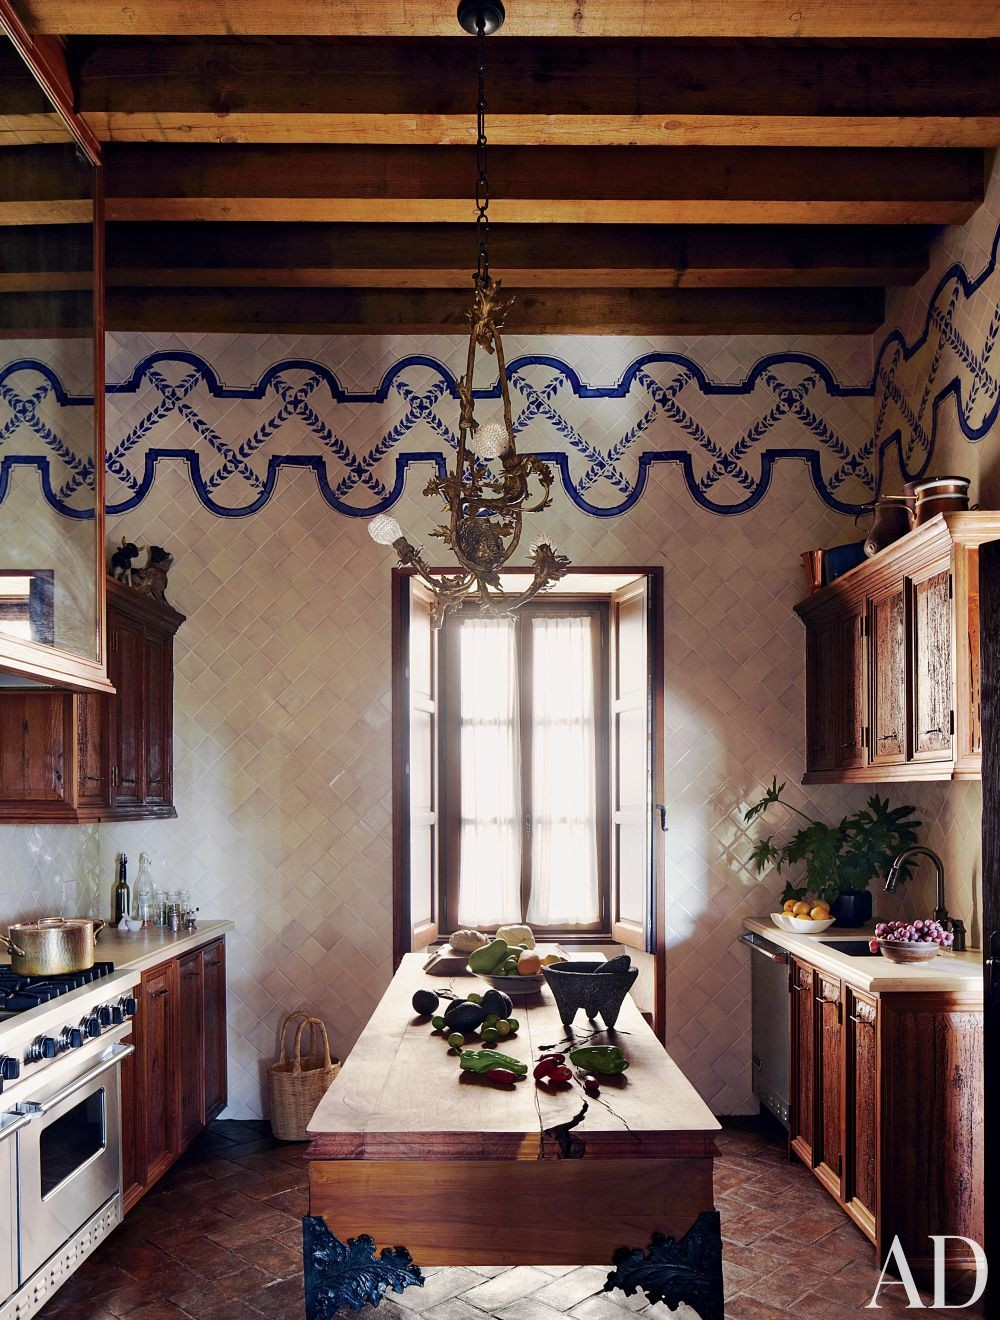 Exotic kitchen by fisher weisman by architectural digest for Artful decoration interiors by fisher weisman